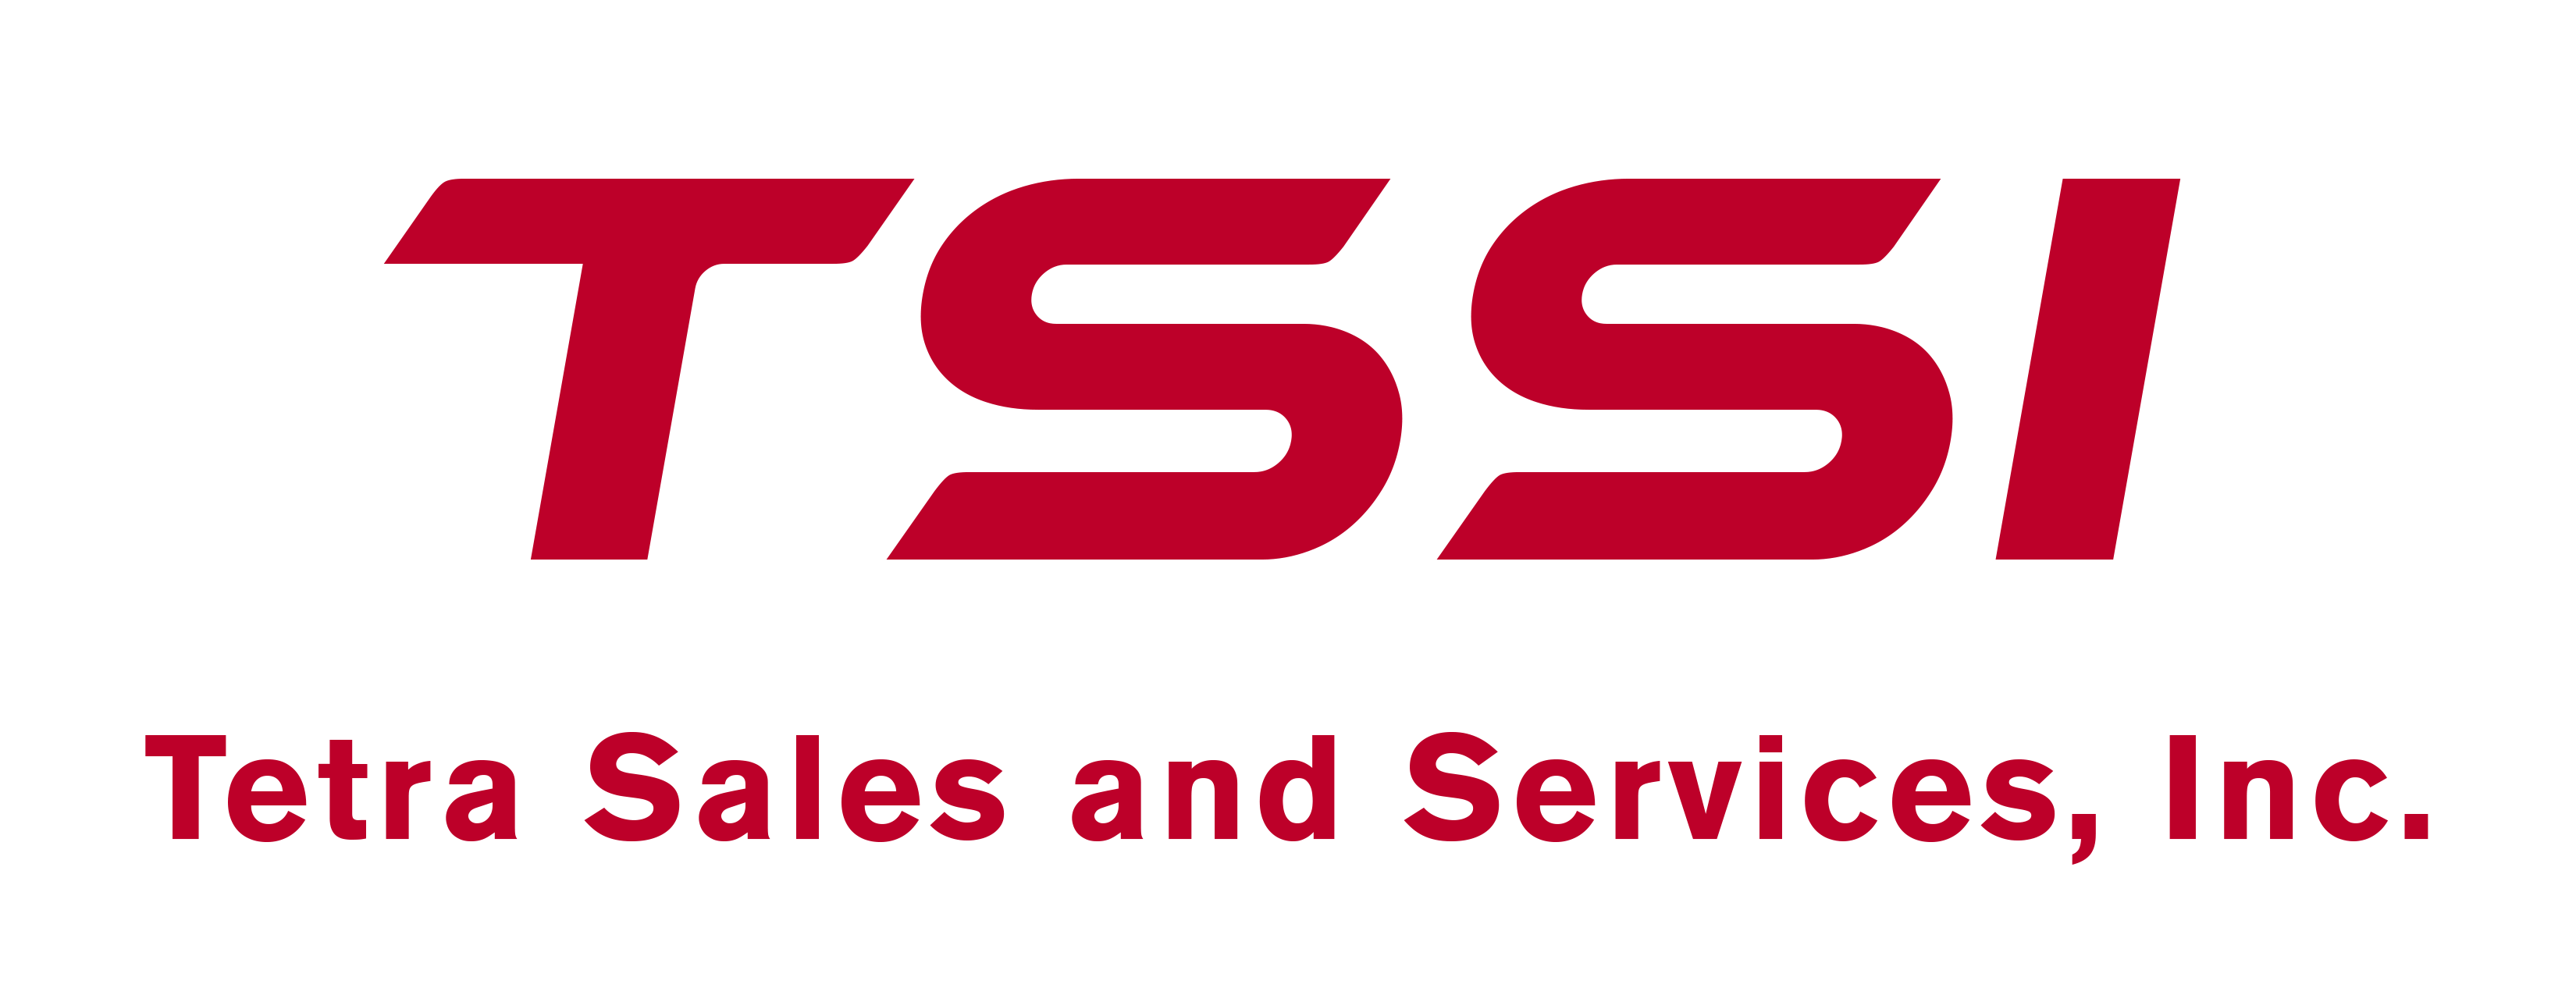 tssi red